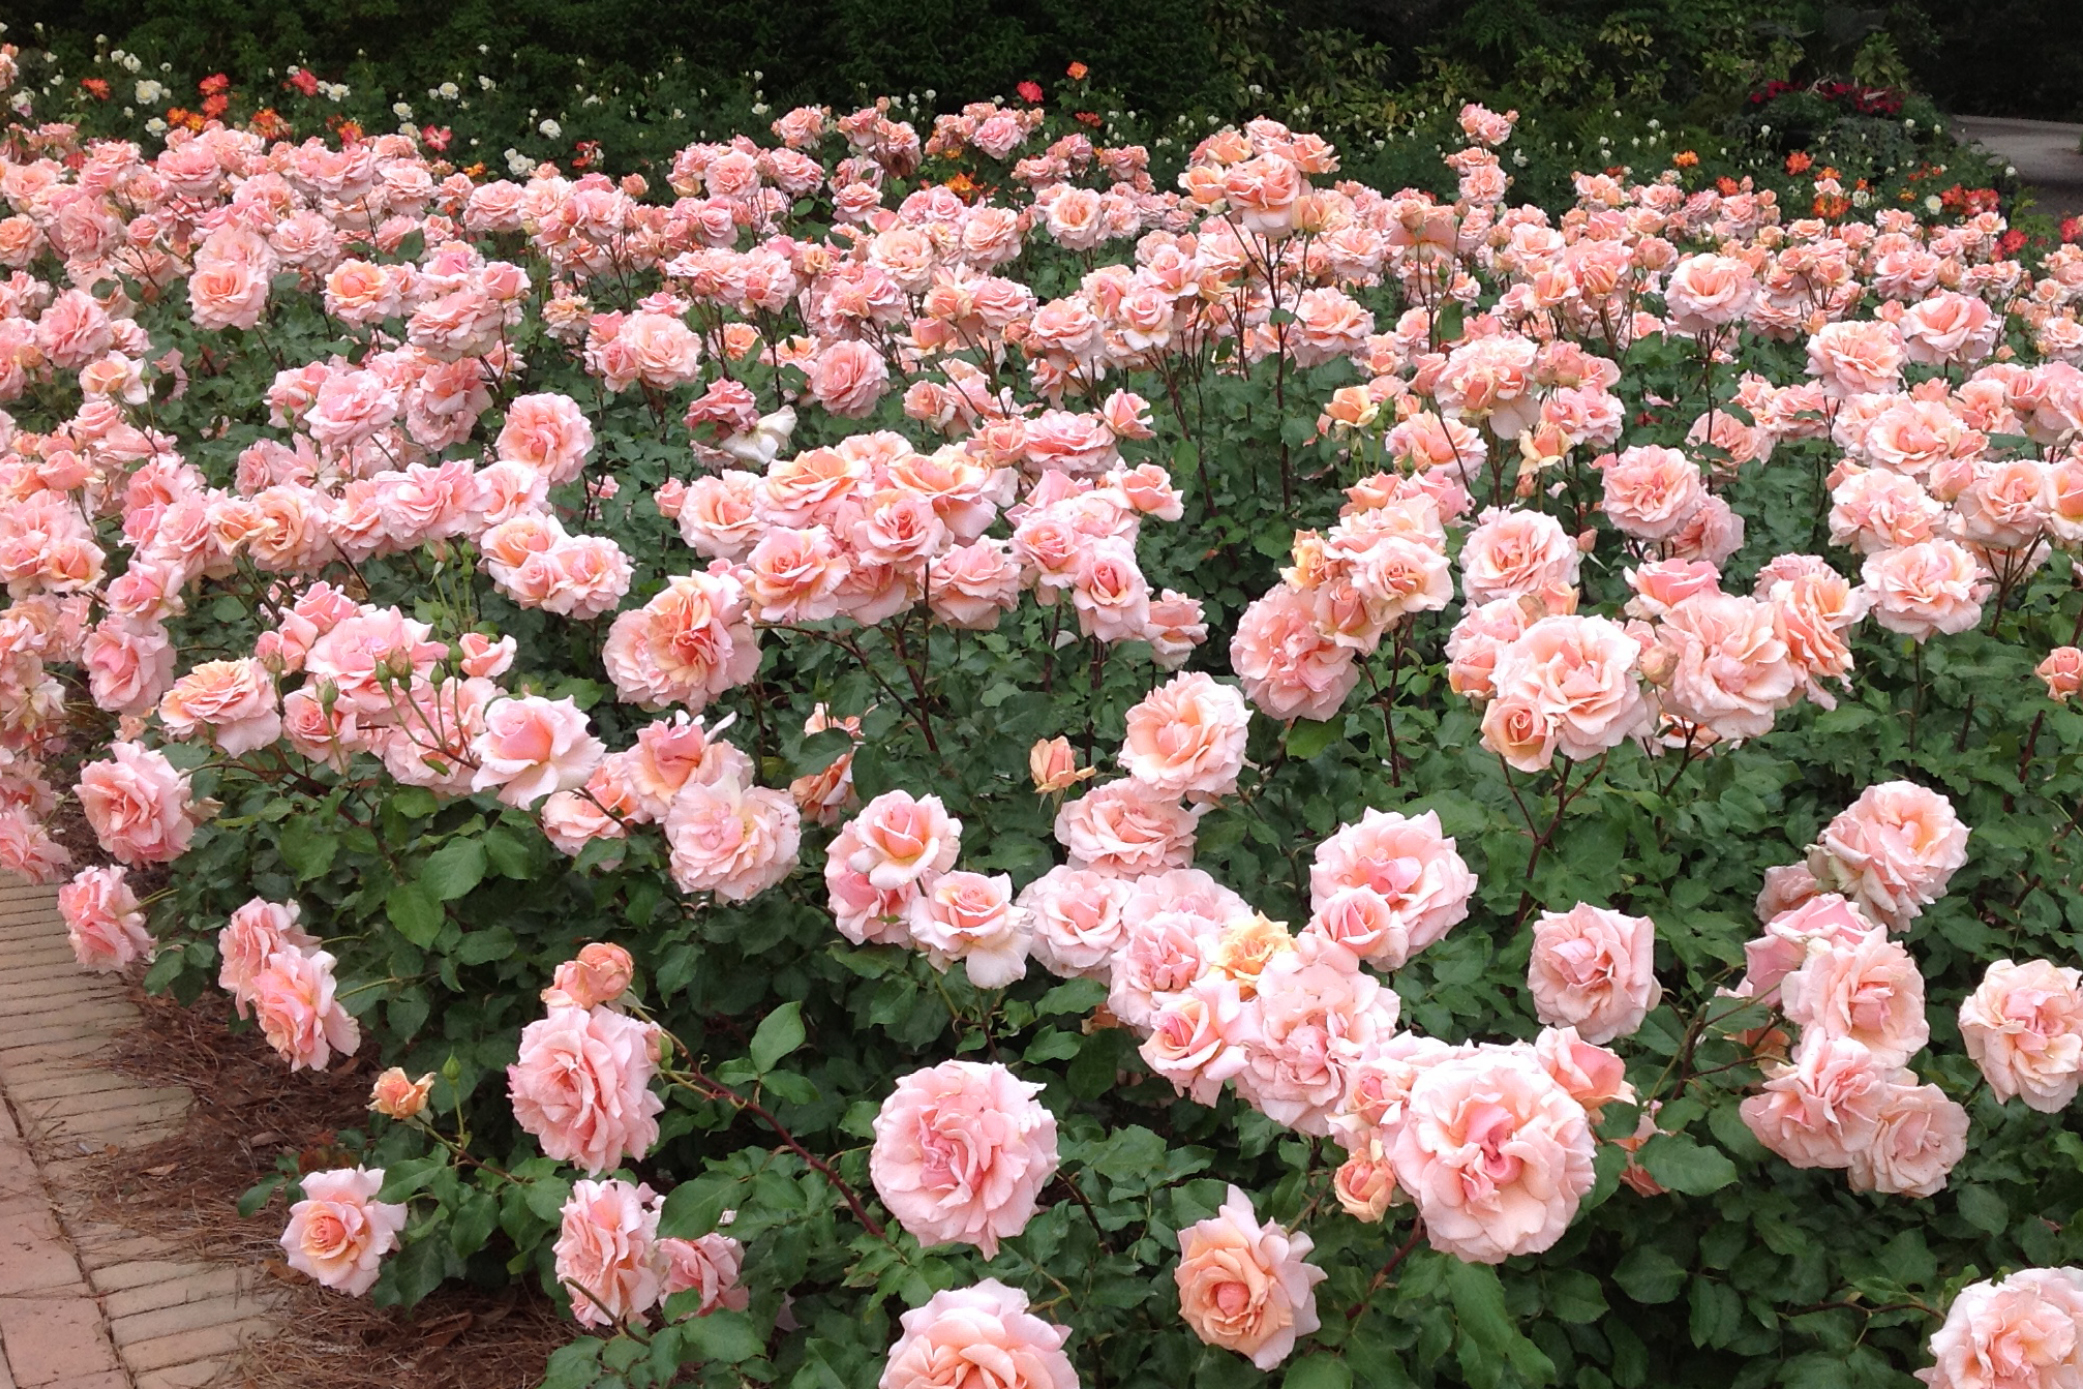 Mother of Pearl® has salmon, pink flowers that thrive in many different climates.